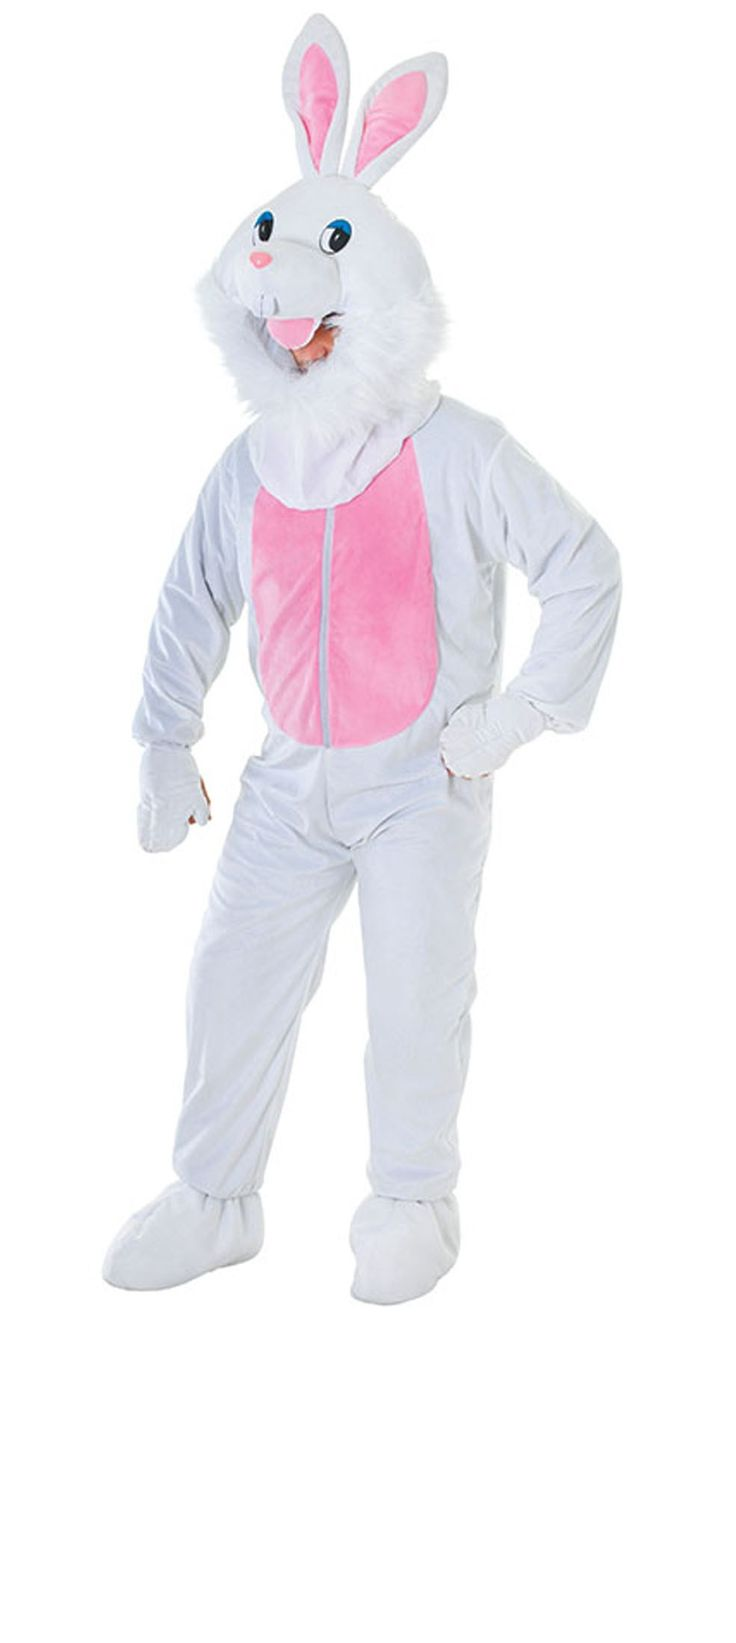 The Big Head #Bunny #costume will be fantastic for #Easter celebration.